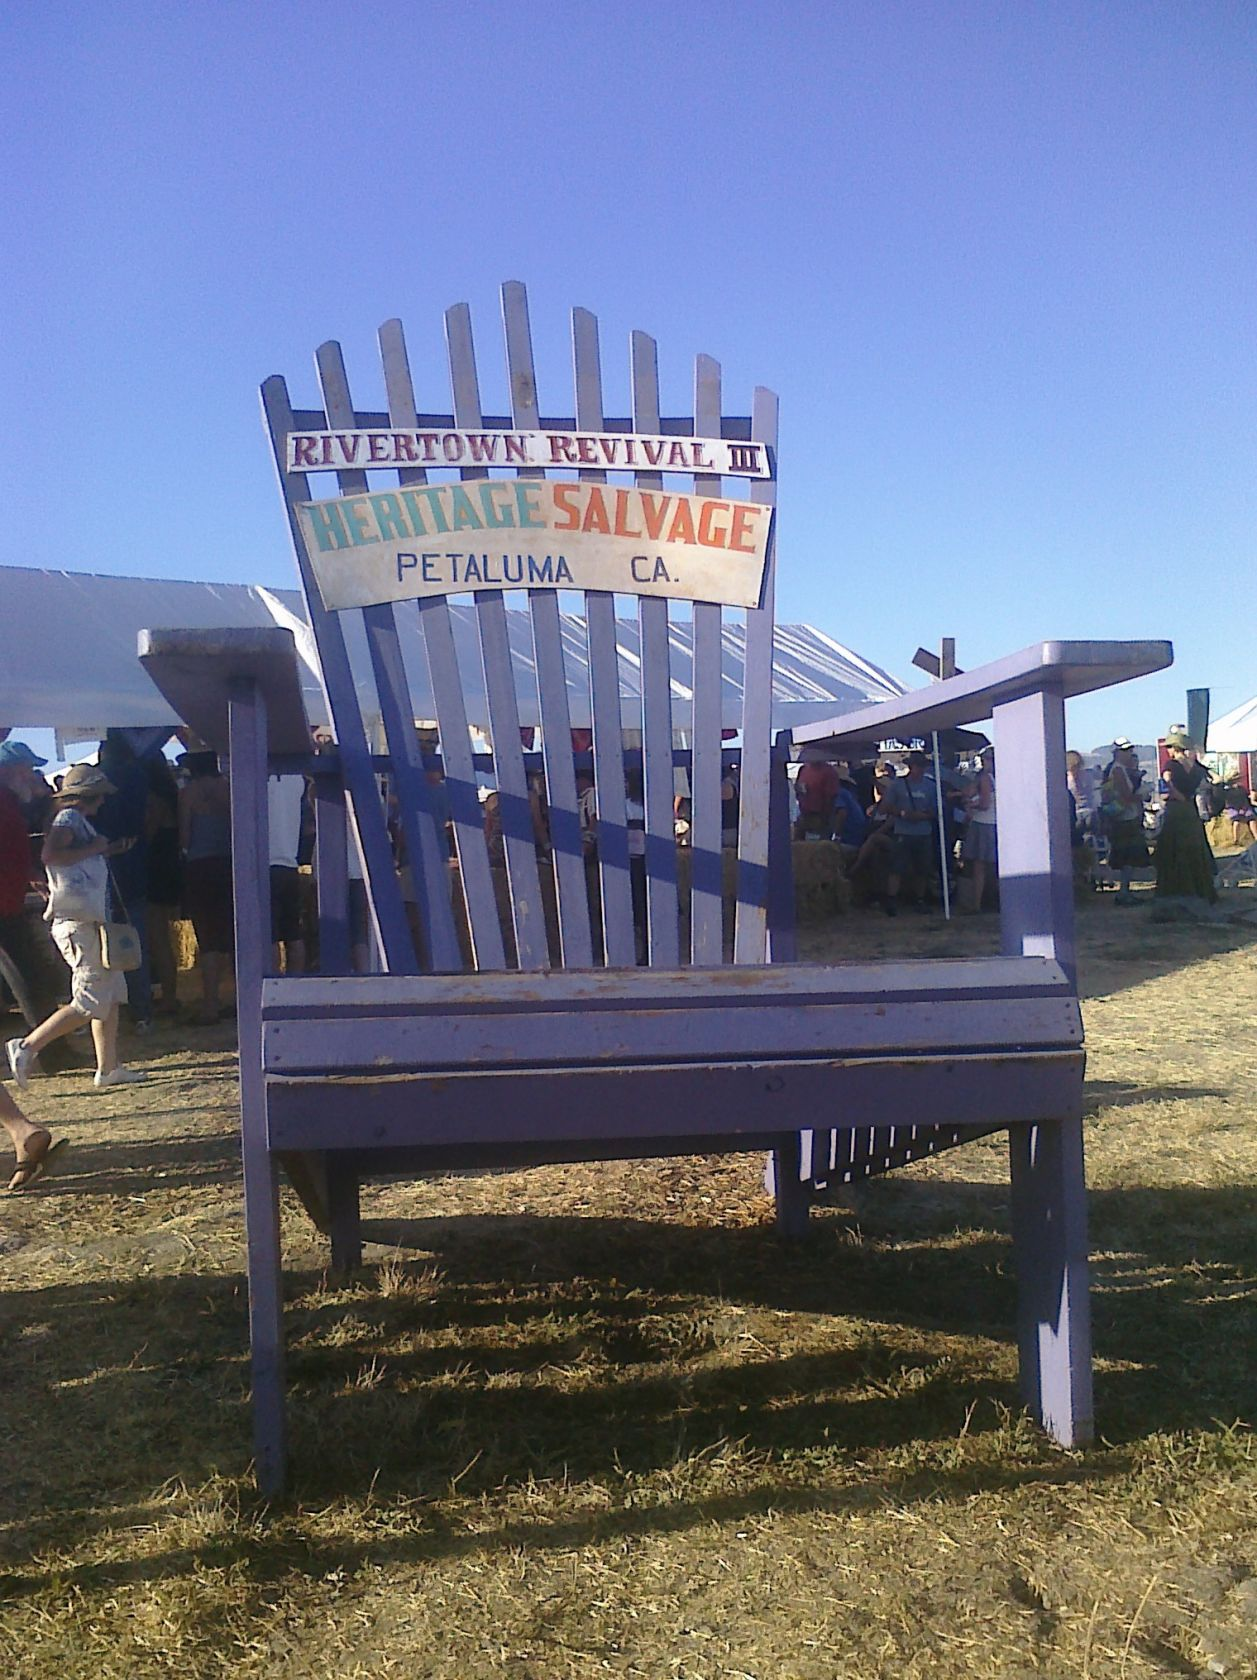 Rocking chair at Petaluma Rivertown Revival 2012. Photo by Summer Burkes